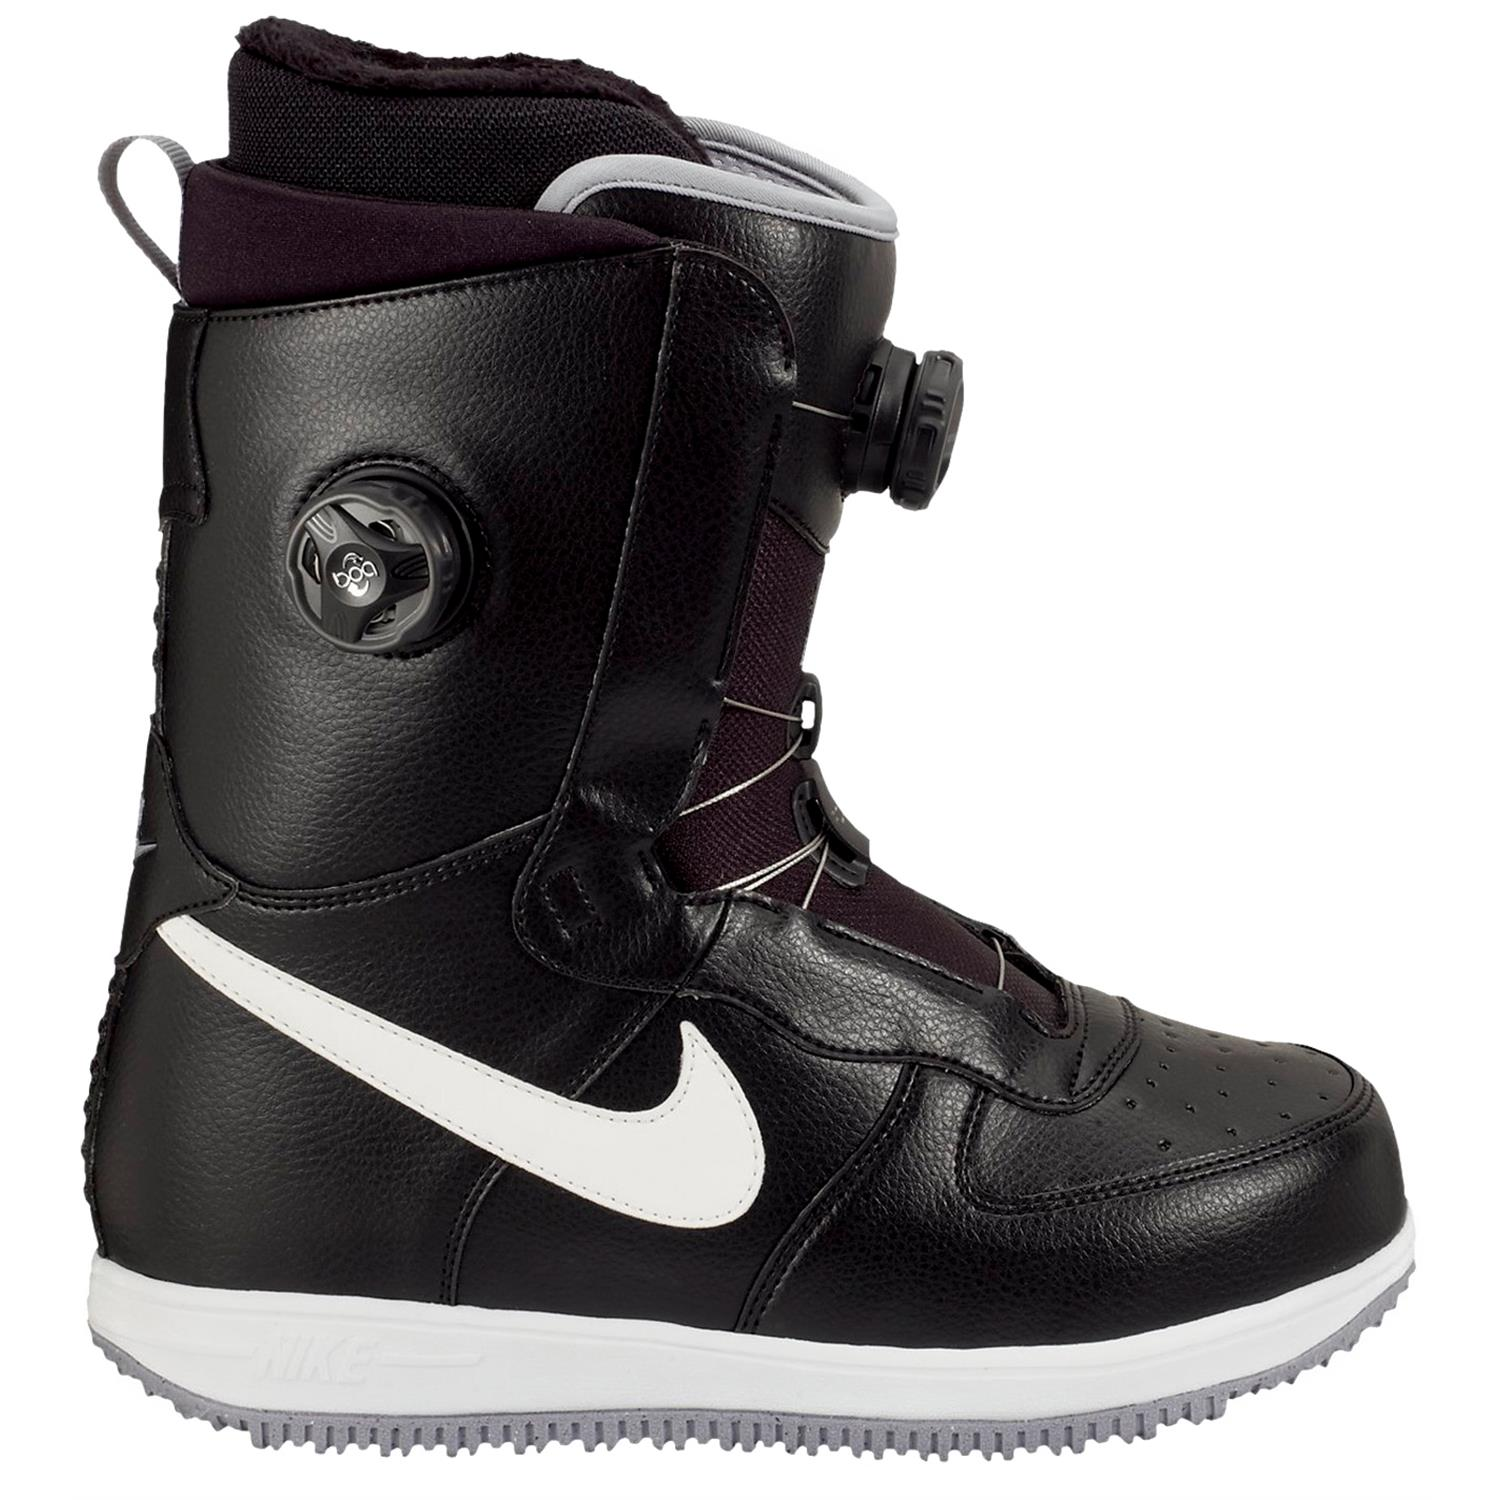 nike sb zoom force 1 boa snowboard boots women 39 s 2015 evo. Black Bedroom Furniture Sets. Home Design Ideas